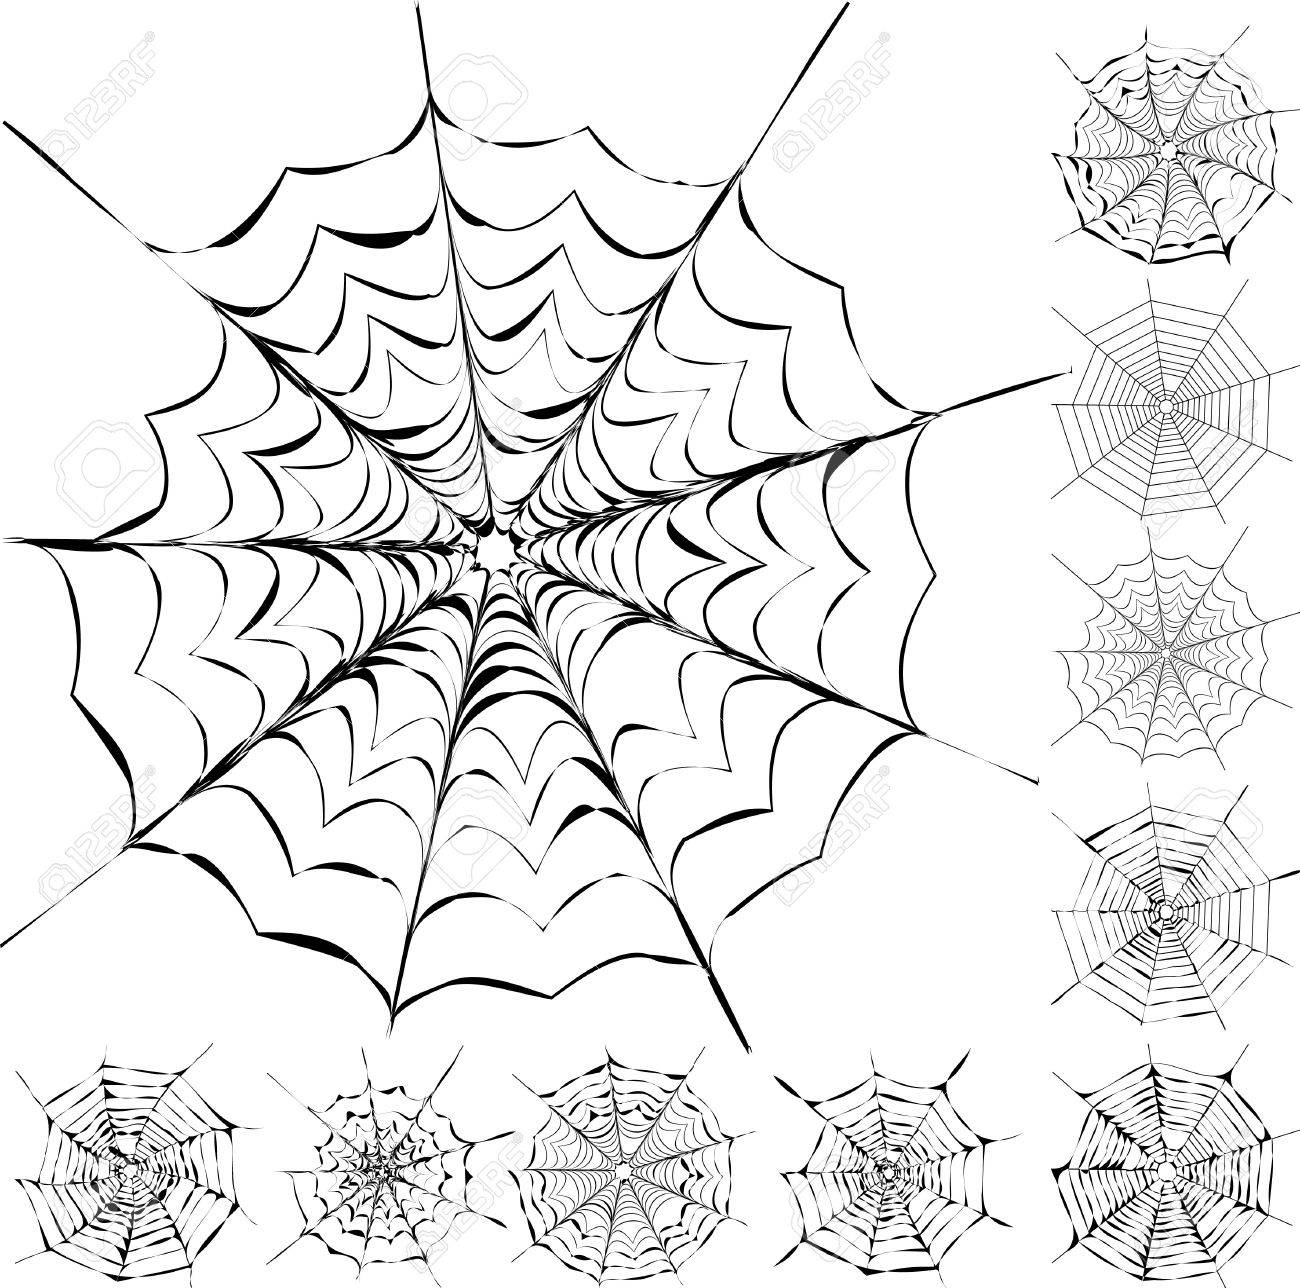 Set of 11 different spiderwebs isolated on white, easy to print, vector illustration Stock Vector - 8155557